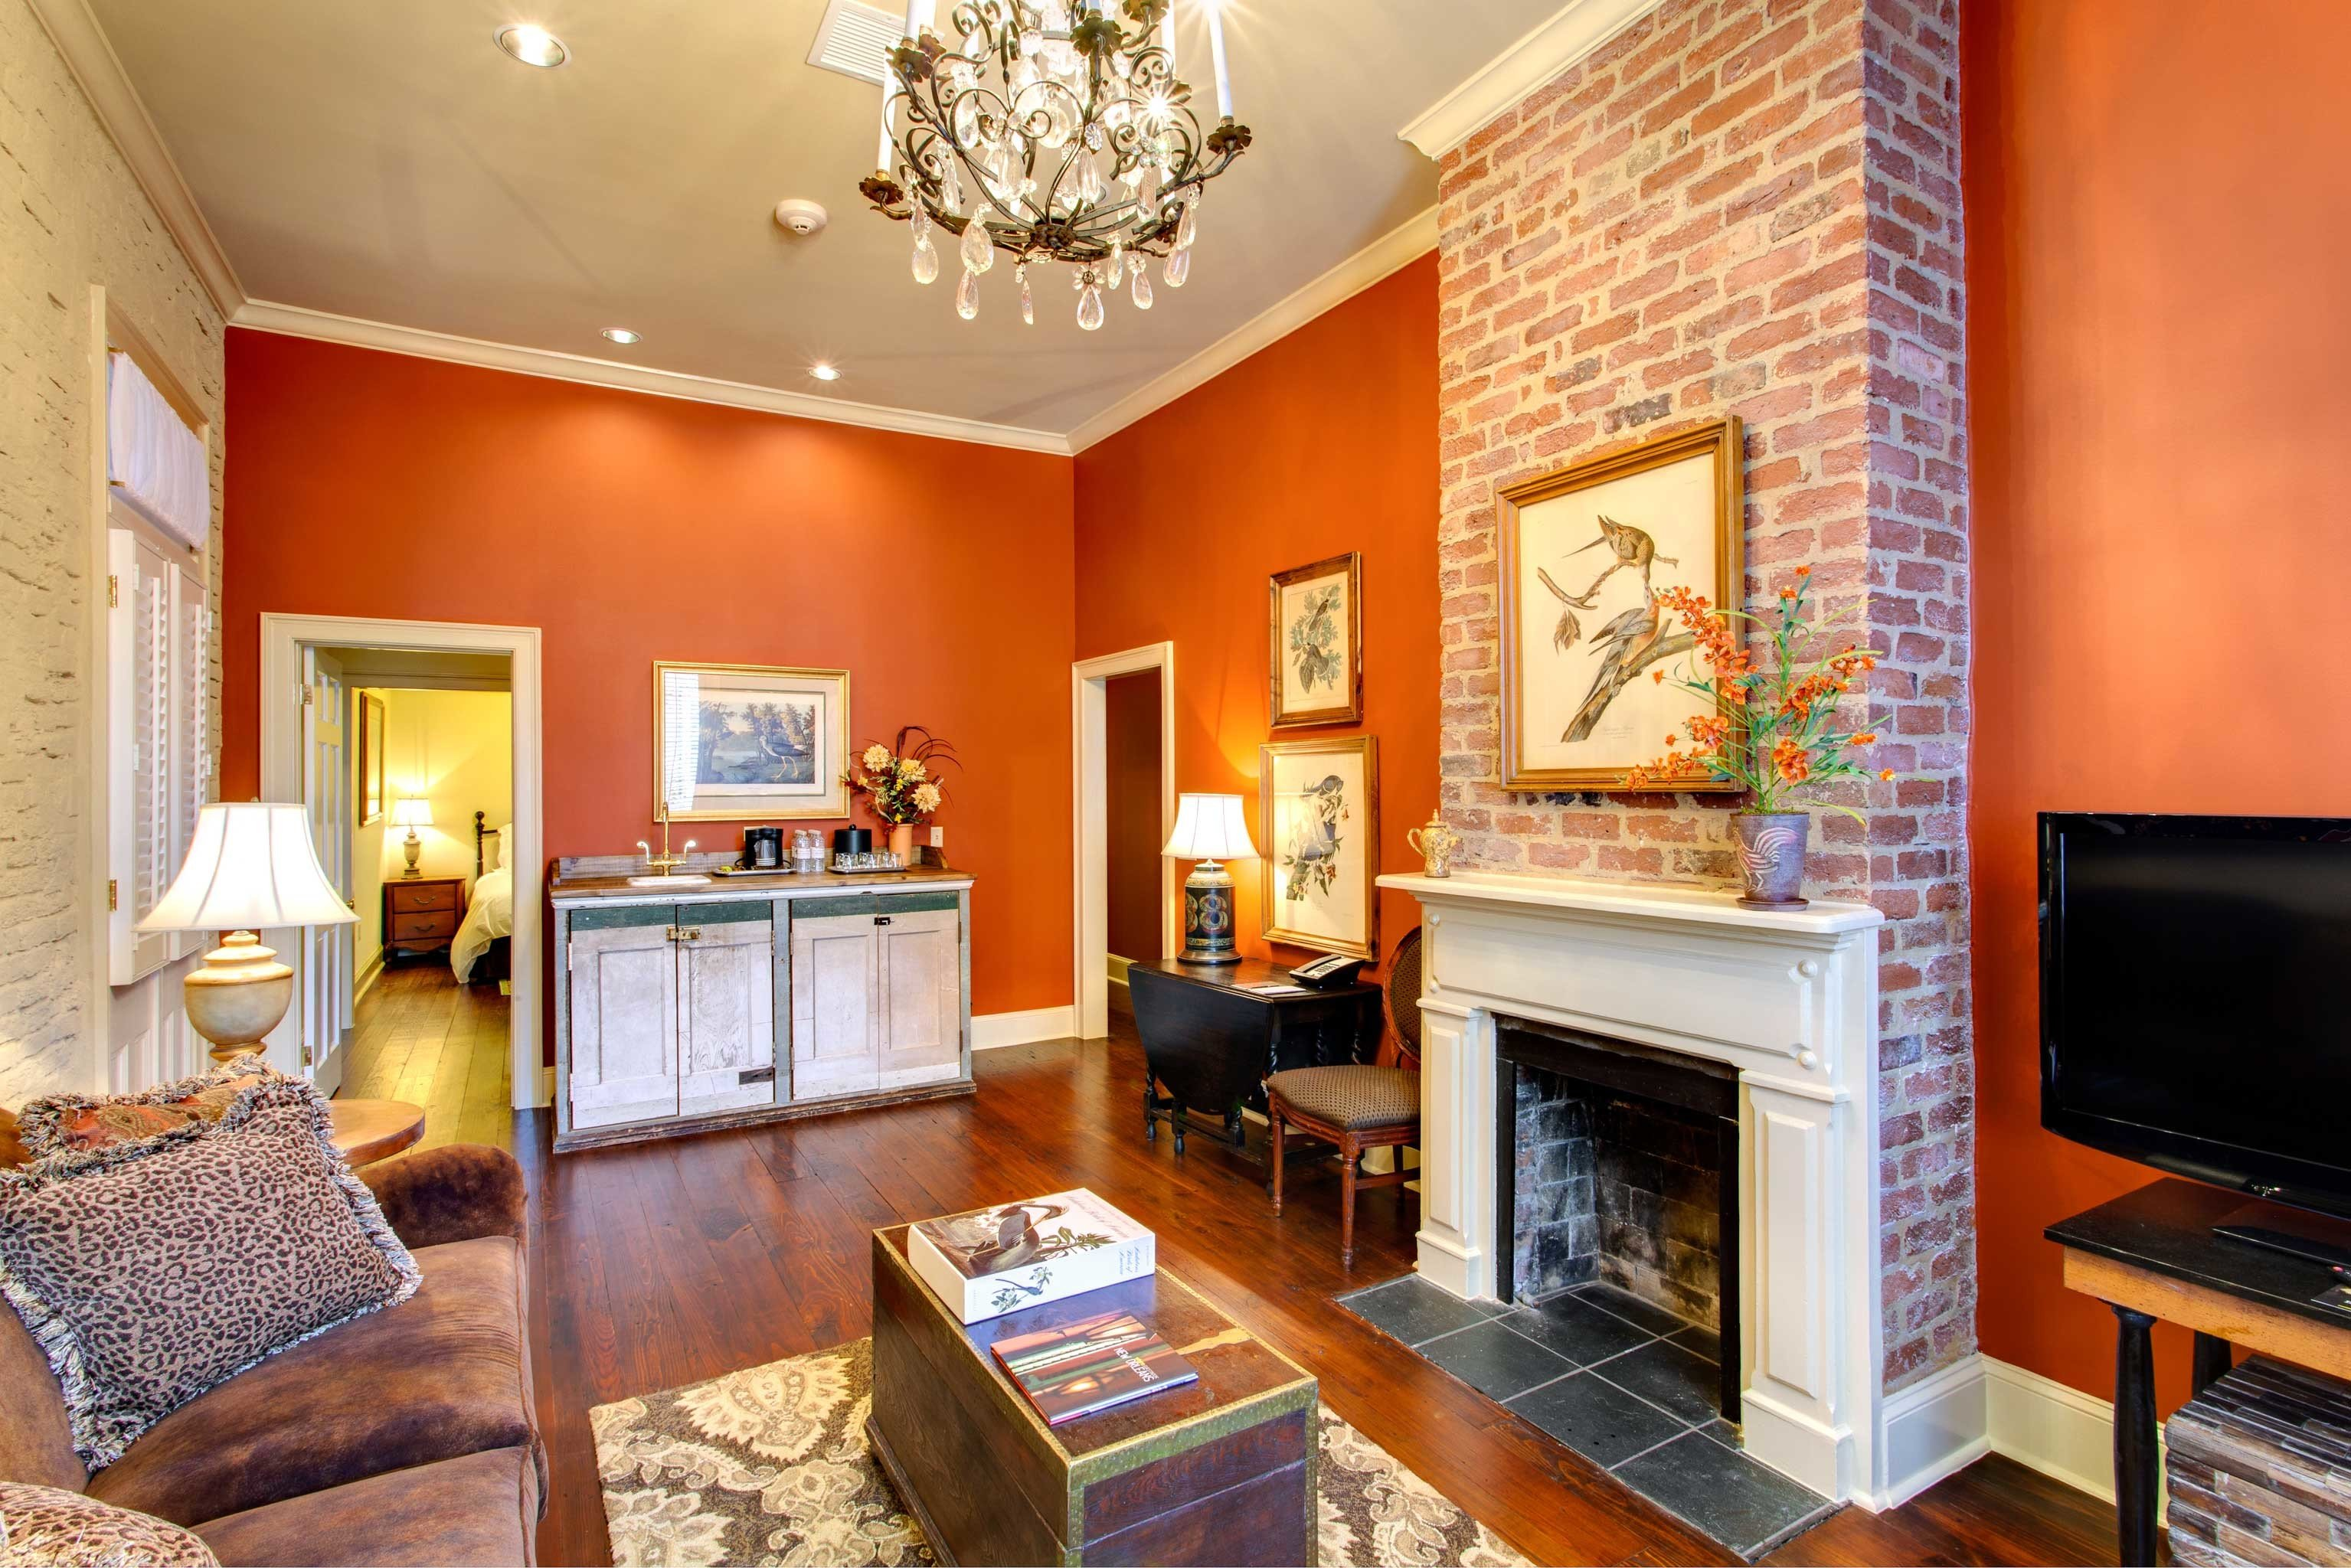 B&B Cultural Drink Eat Entertainment Lounge Nightlife sofa Fireplace living room property television home hardwood cottage Suite flat Villa condominium